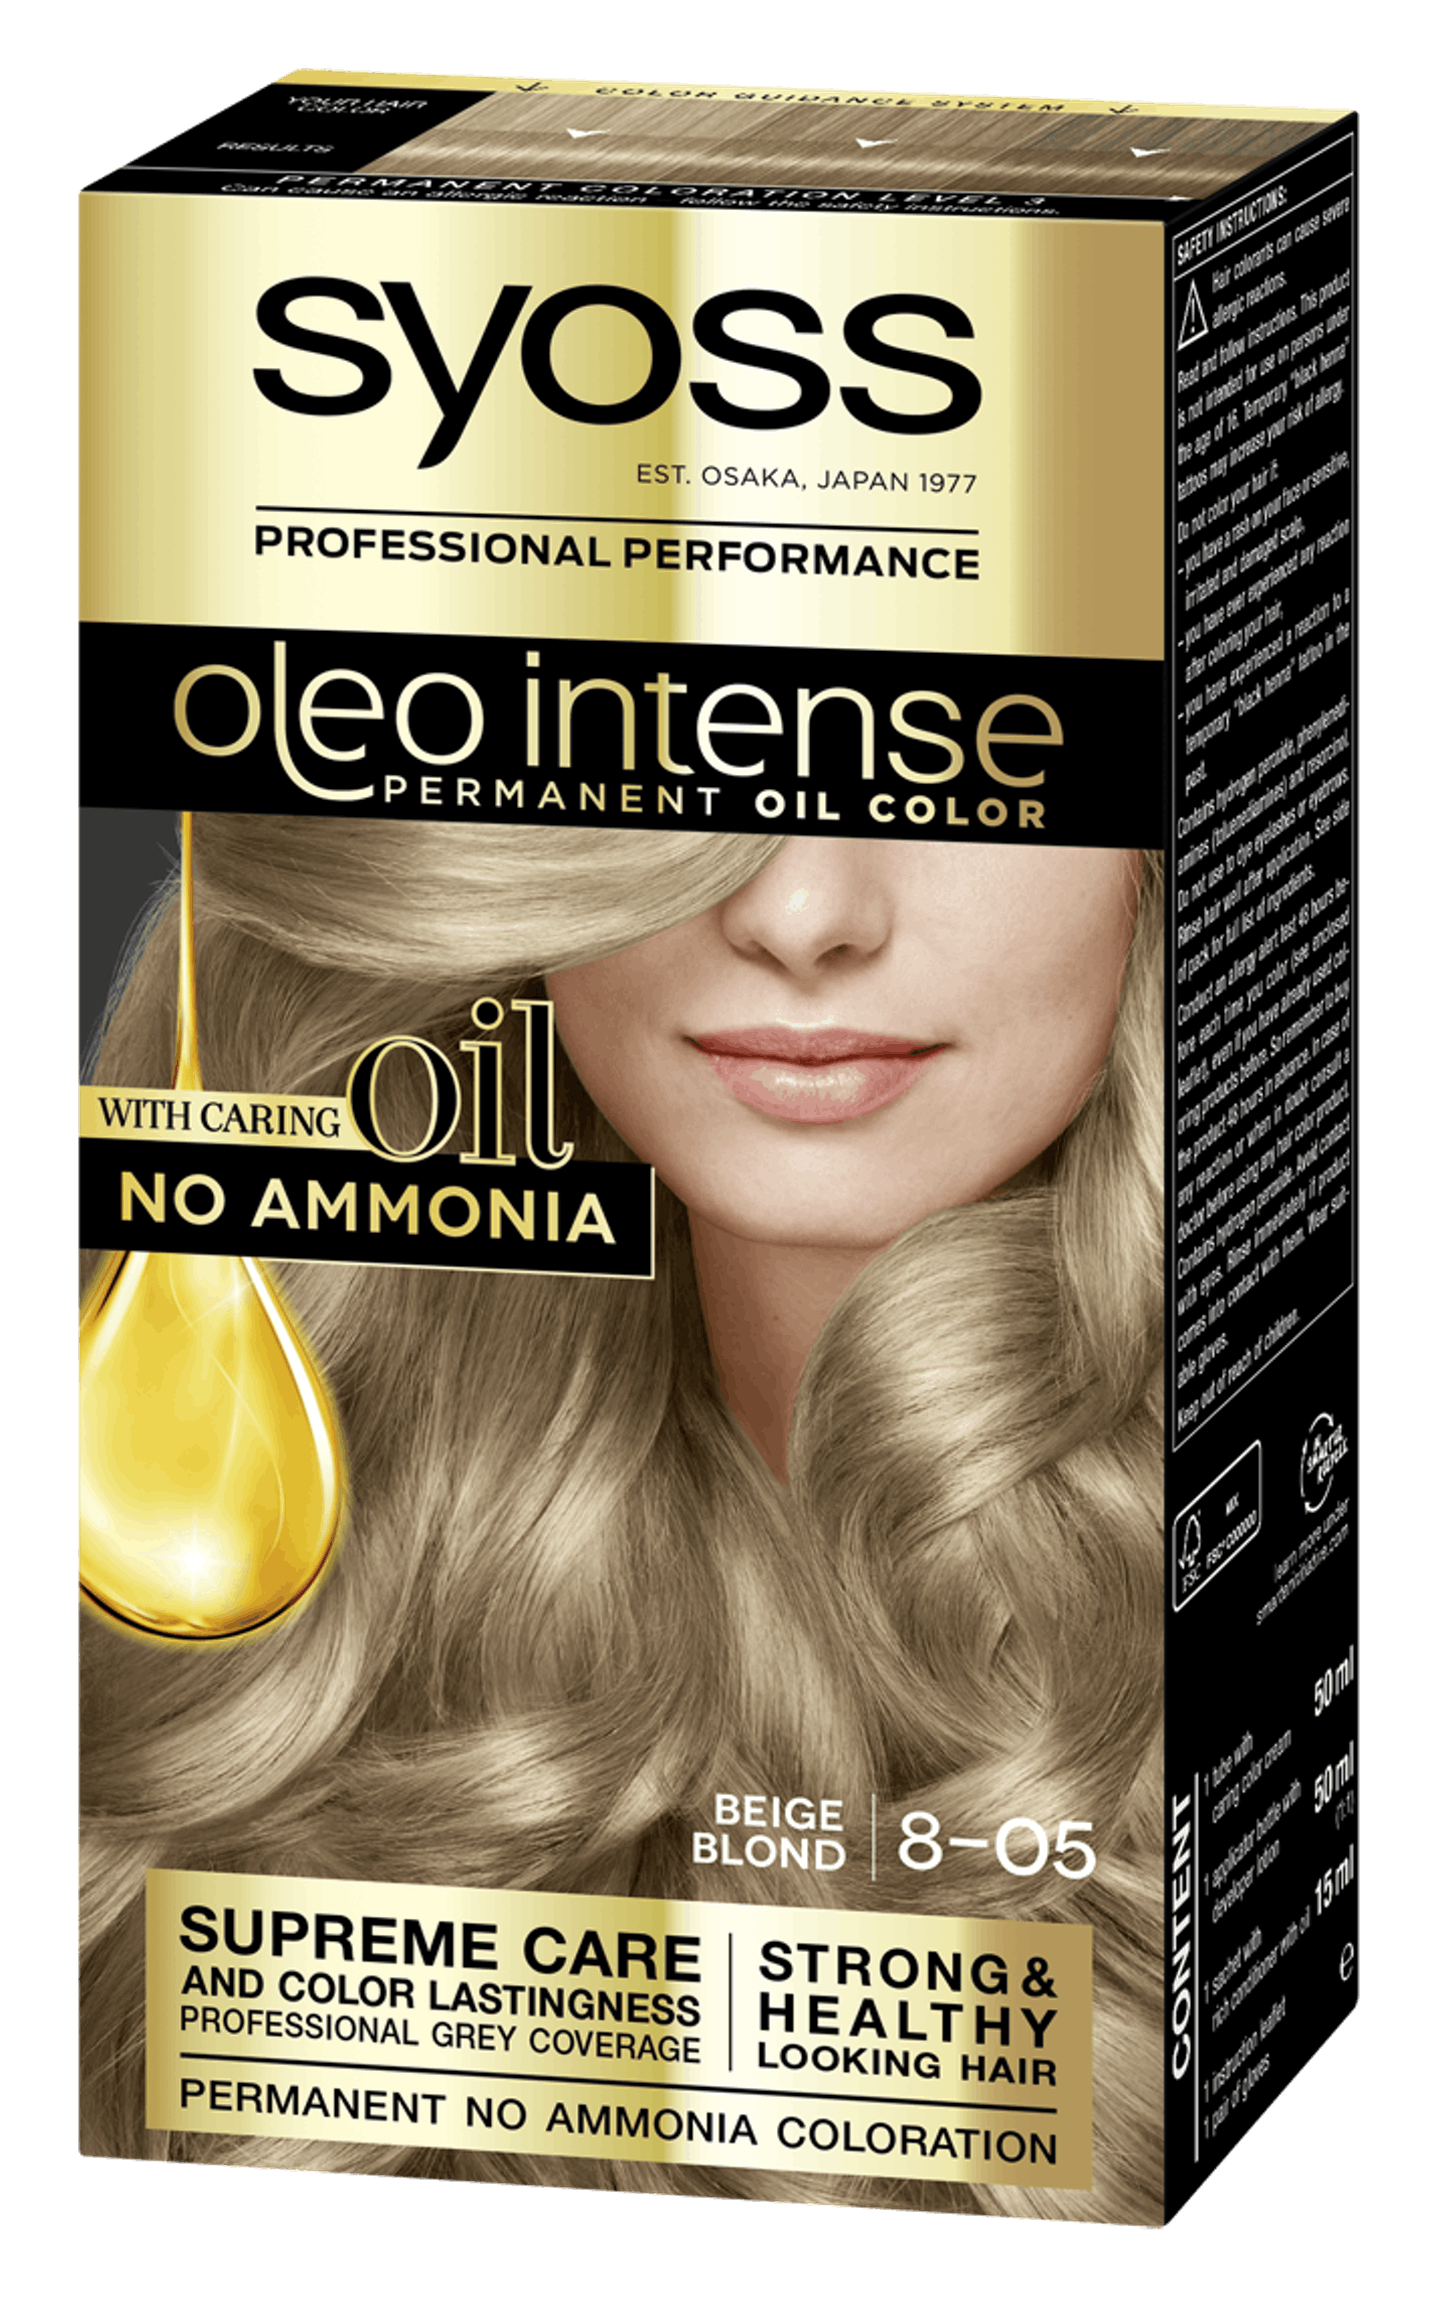 Syoss Oleo Intense Permanent Oil Color 8-05 Beige Blond